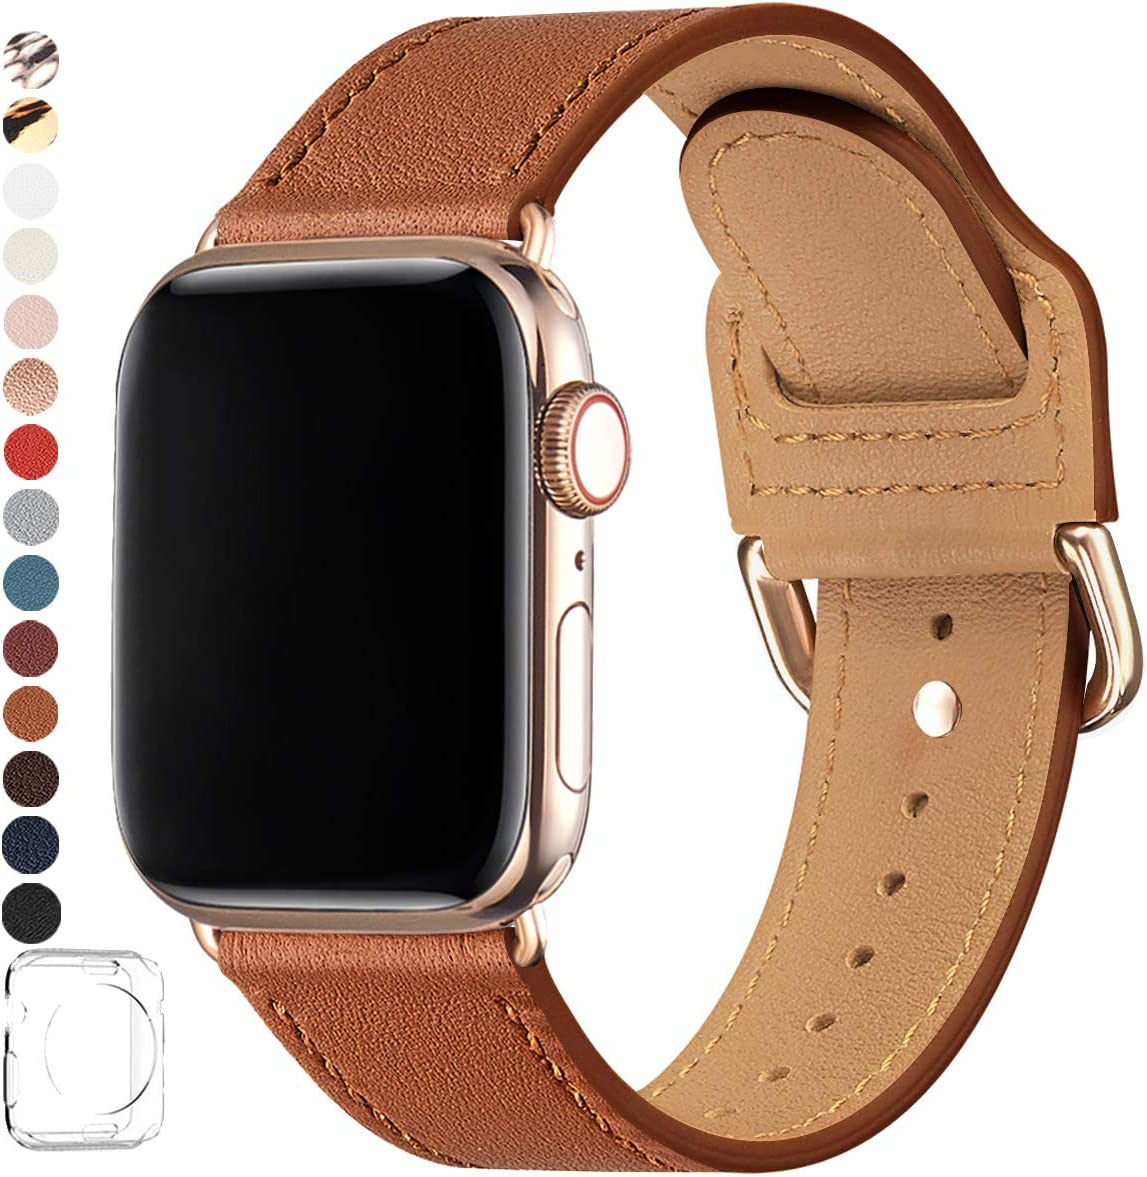 POWER PRIMACY Bands Compatible with Apple Watch Band 38mm 40mm 42mm 44mm, Top Grain Leather Smart Watch Strap Compatible for Men Women iWatch Series 6 5 4 3 2 1,SE(Brown/Gold, 38mm/40mm)